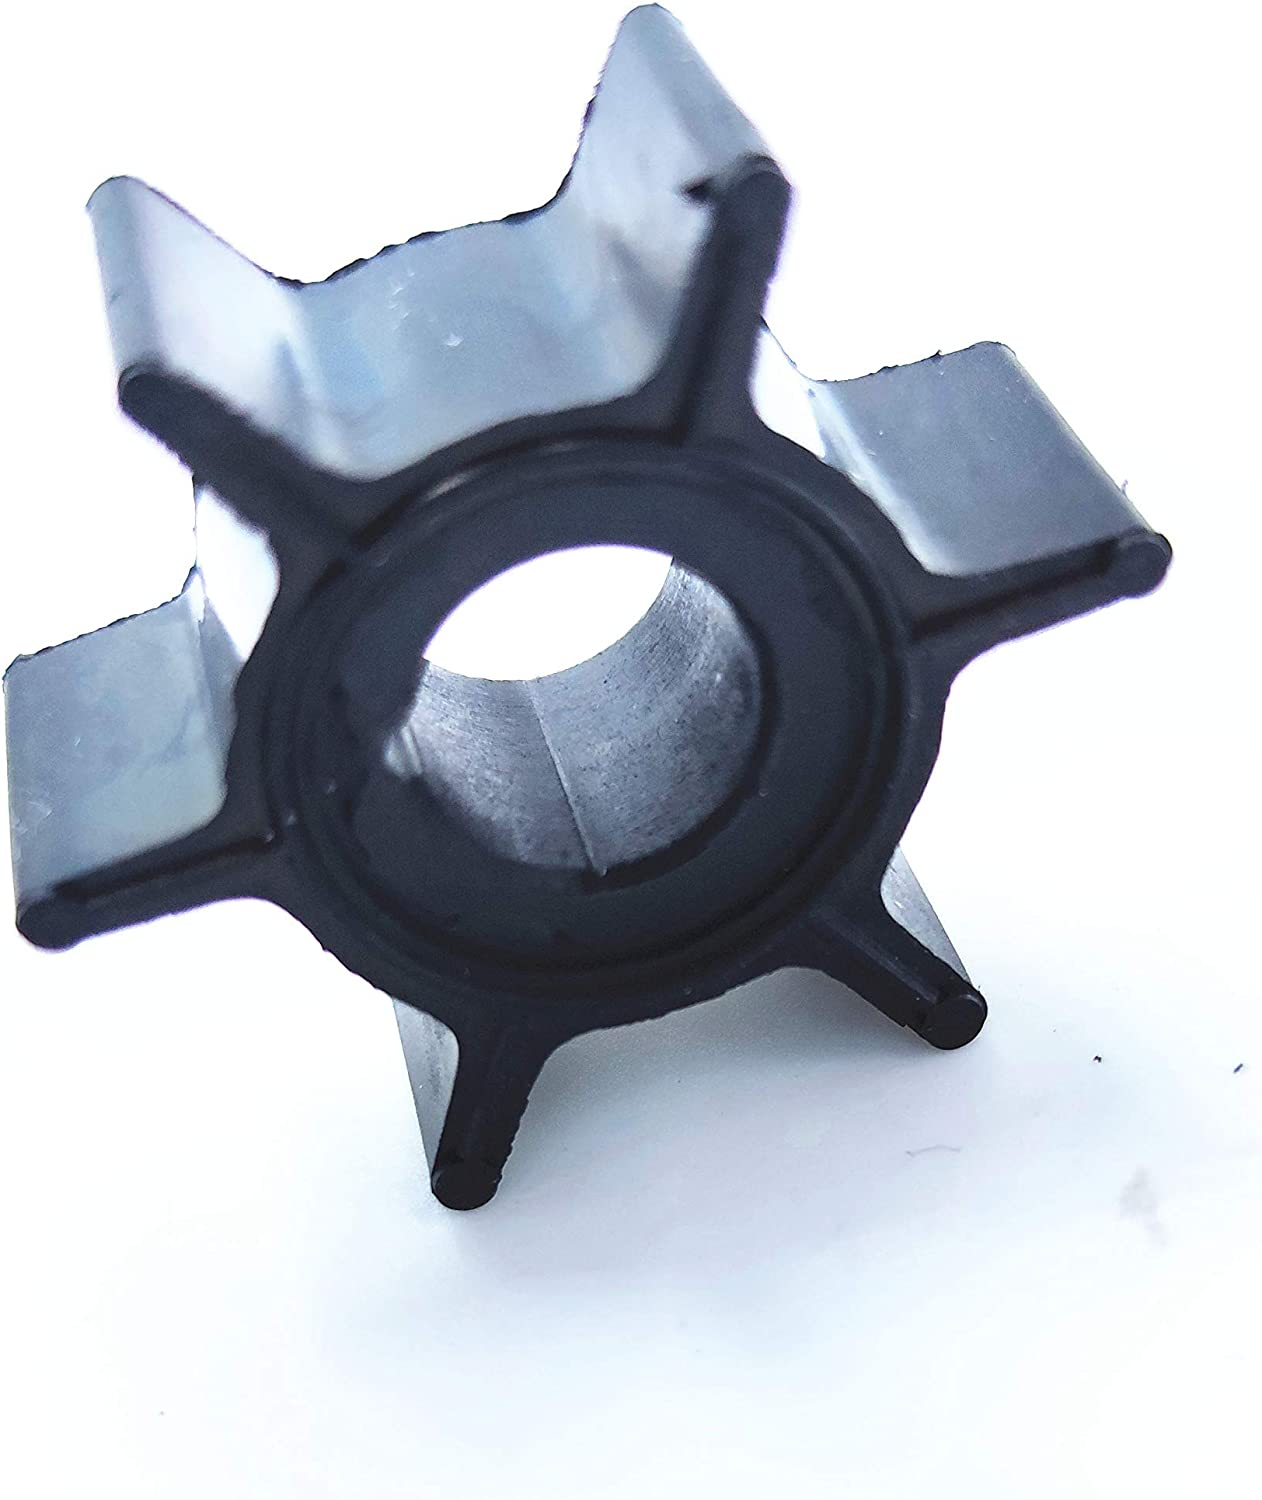 Jetunit for Mercury Impeller Outboard 47-16154-3 2,4stroke 1,2cyl 2hp 2.5hp 3.3hp 3.5hp 4hp 5hp 6hp